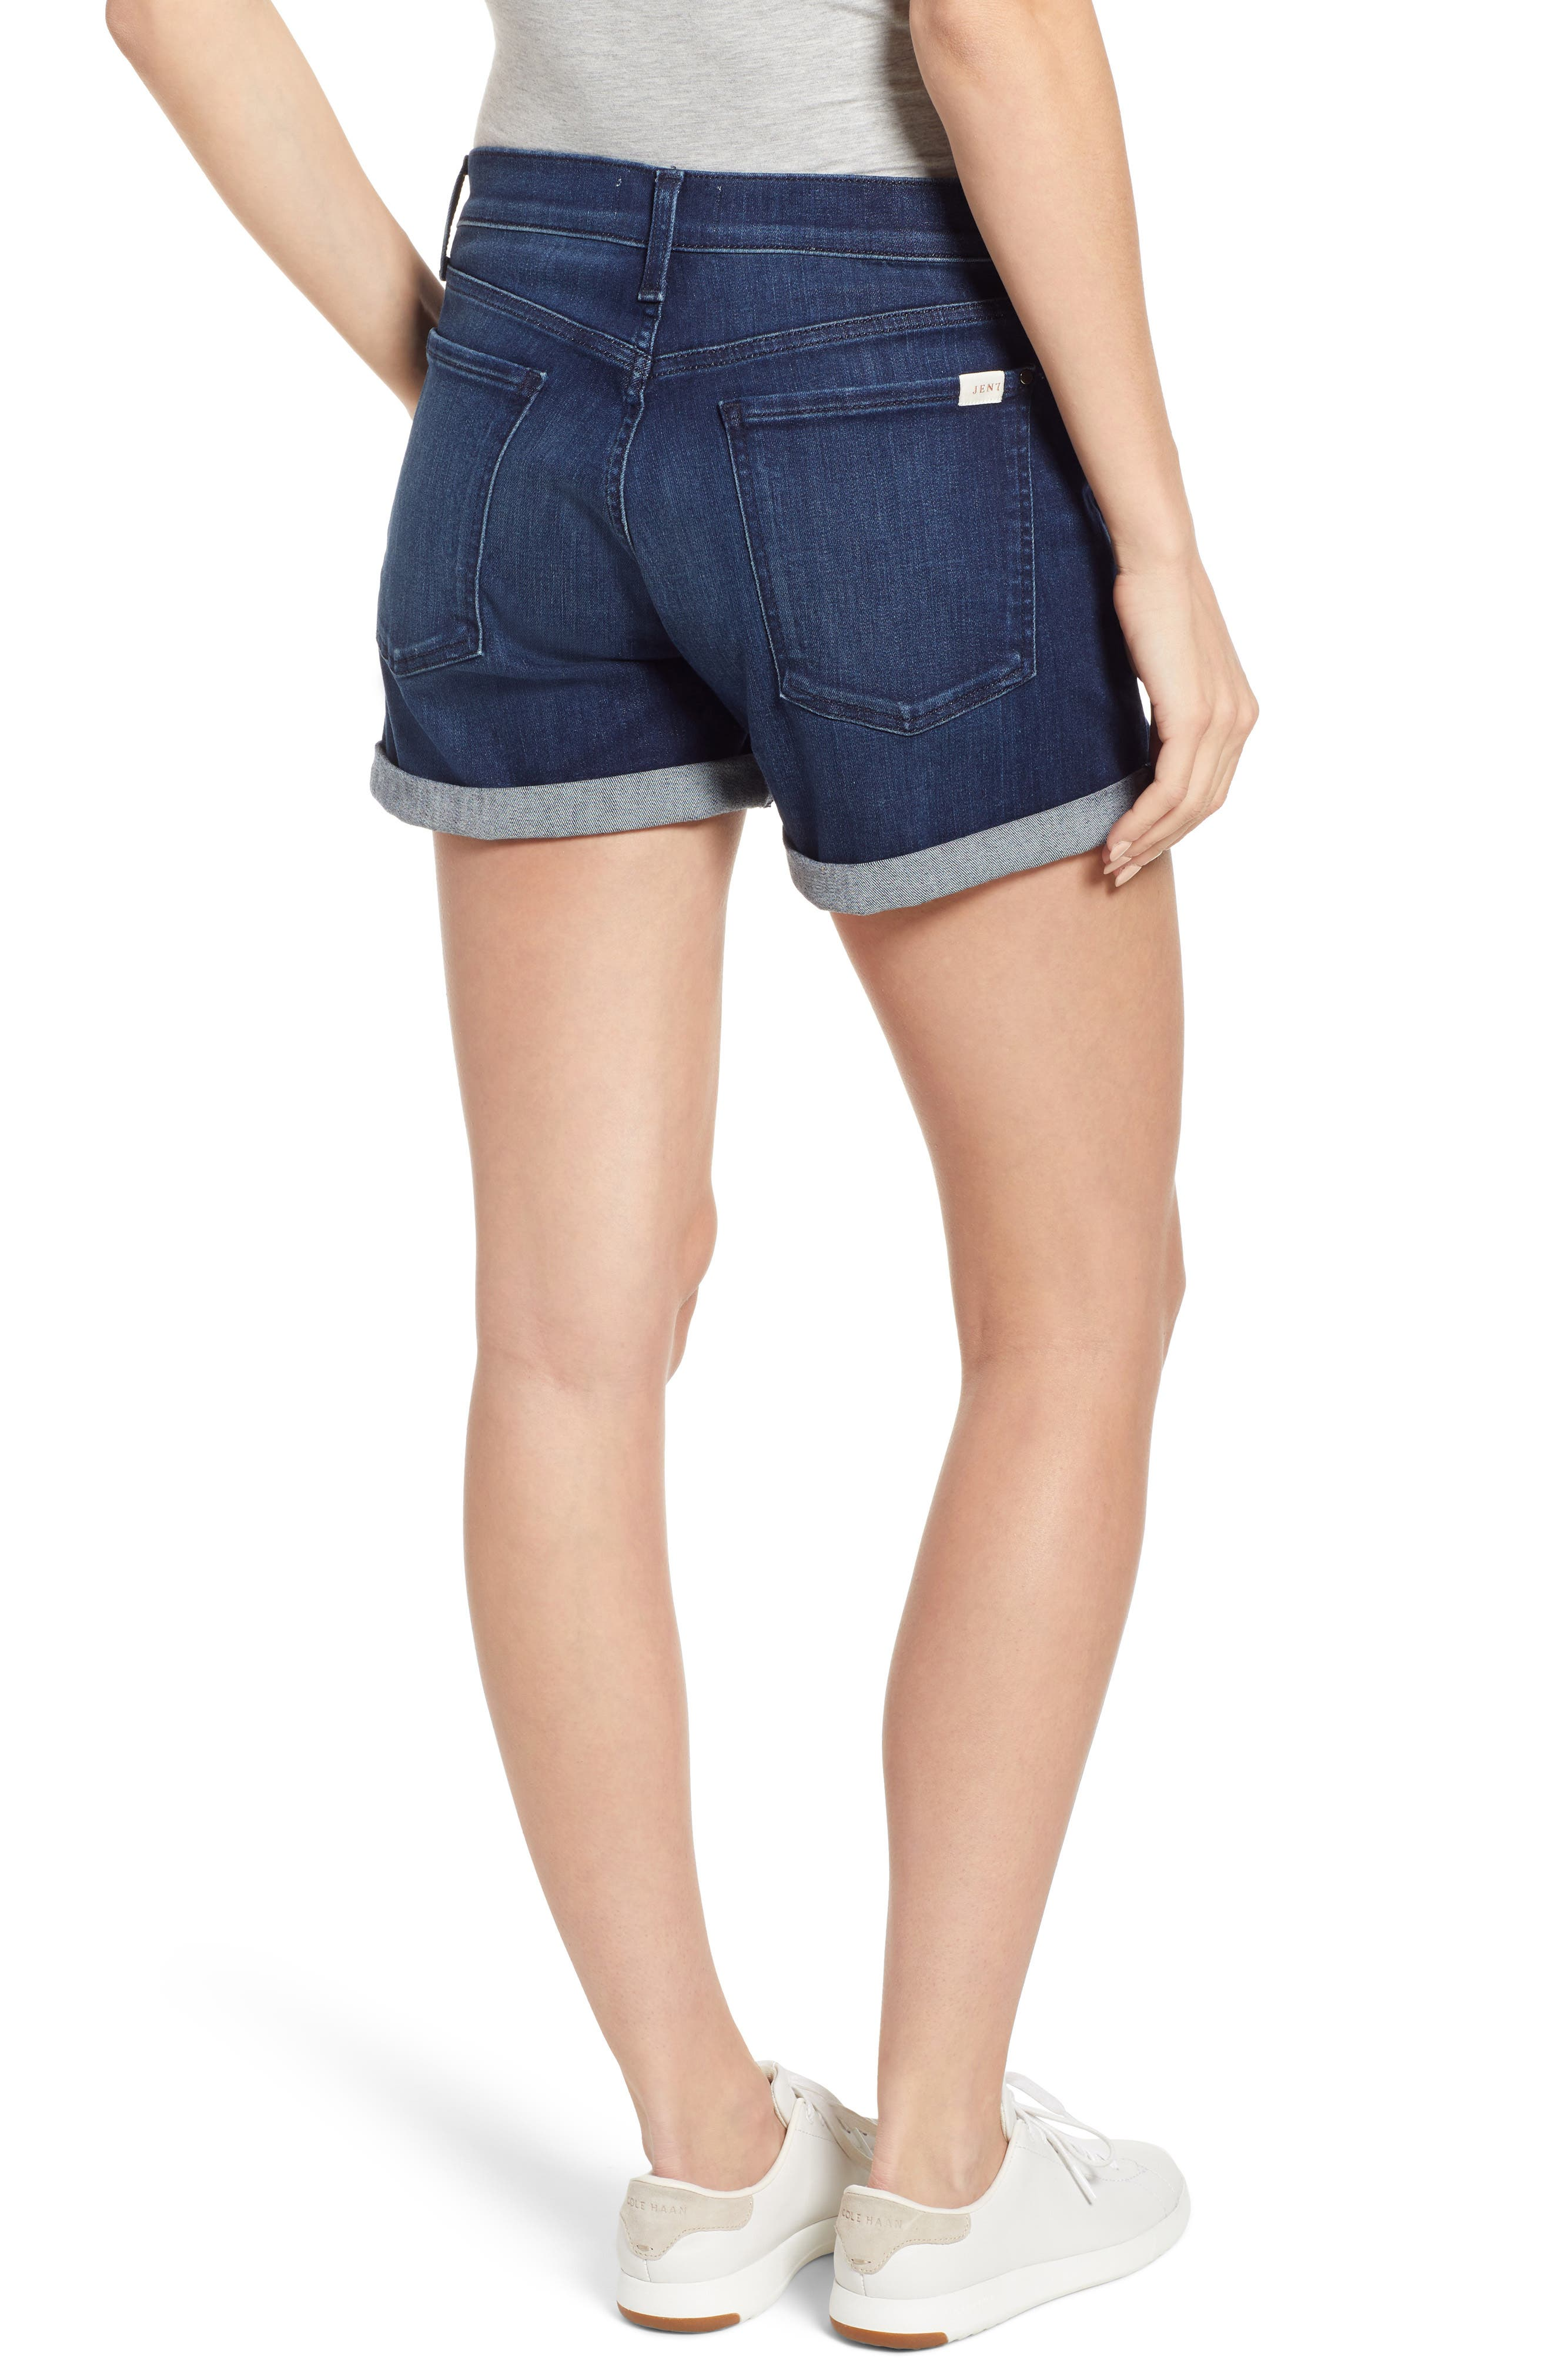 JEN7 BY 7 FOR ALL MANKIND, Roll Cuff Denim Shorts, Alternate thumbnail 2, color, IMPERIAL INDIGO